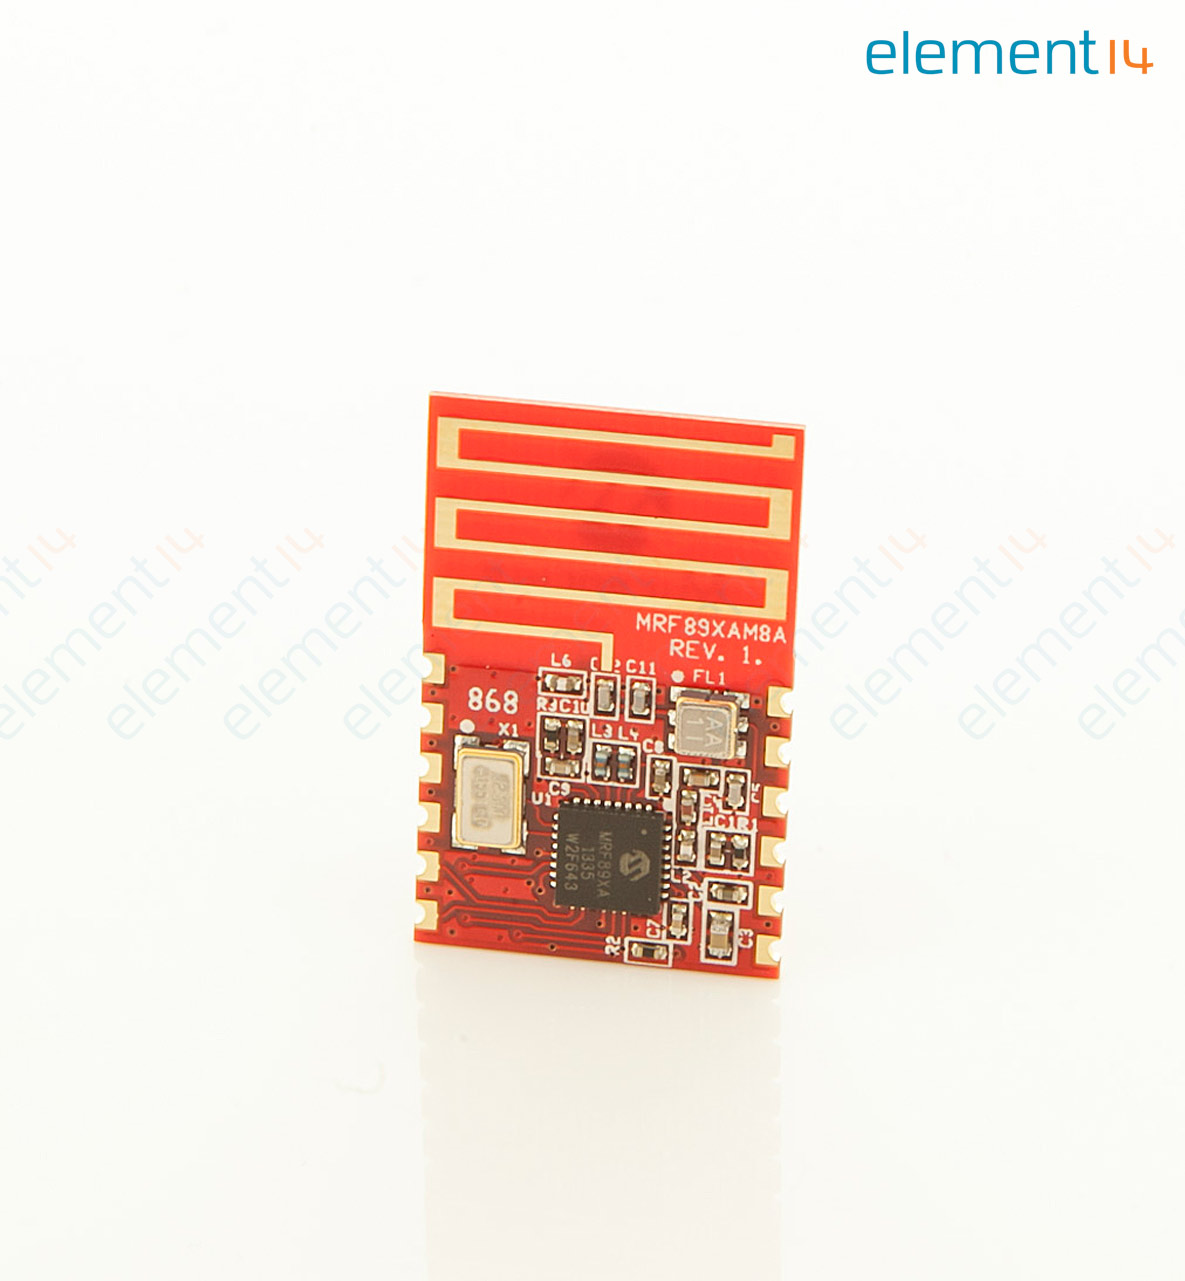 Mrf89xam8a I Rm Microchip Transceiver Module Surface Mount Ultra Lowcost Shipment Shock Sensor Using A 6pin Sot23 Microcontroller Low Power 868 Mhz